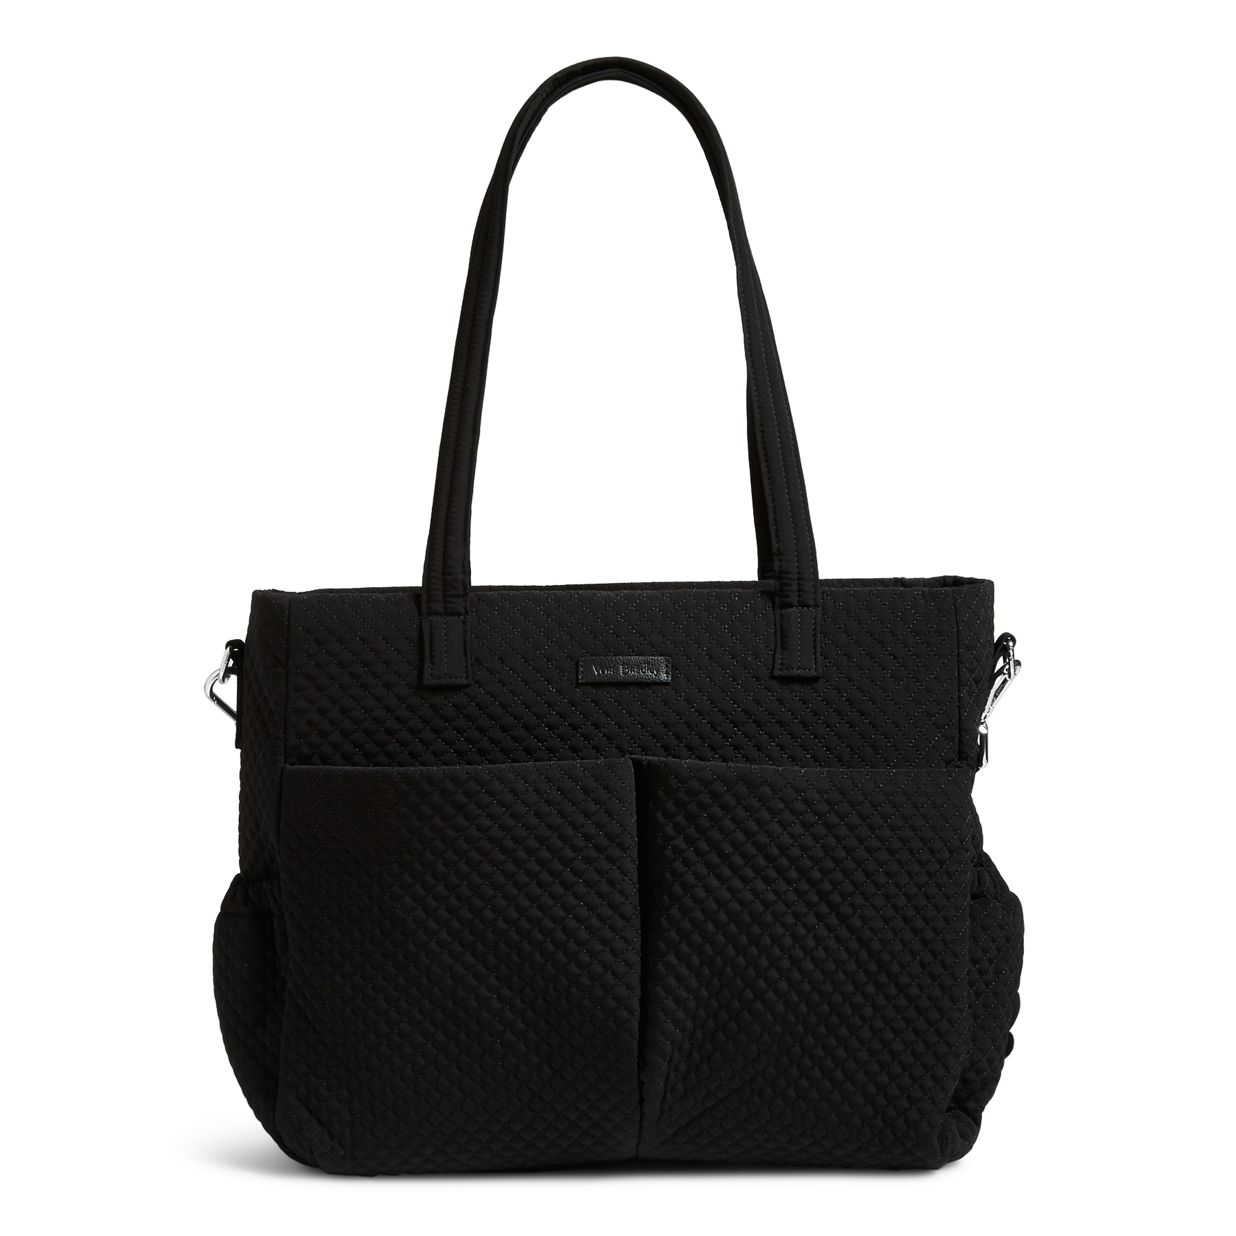 Image of Iconic Ultimate Diaper Bag in Classic Black ... 0f13ddd9c299f